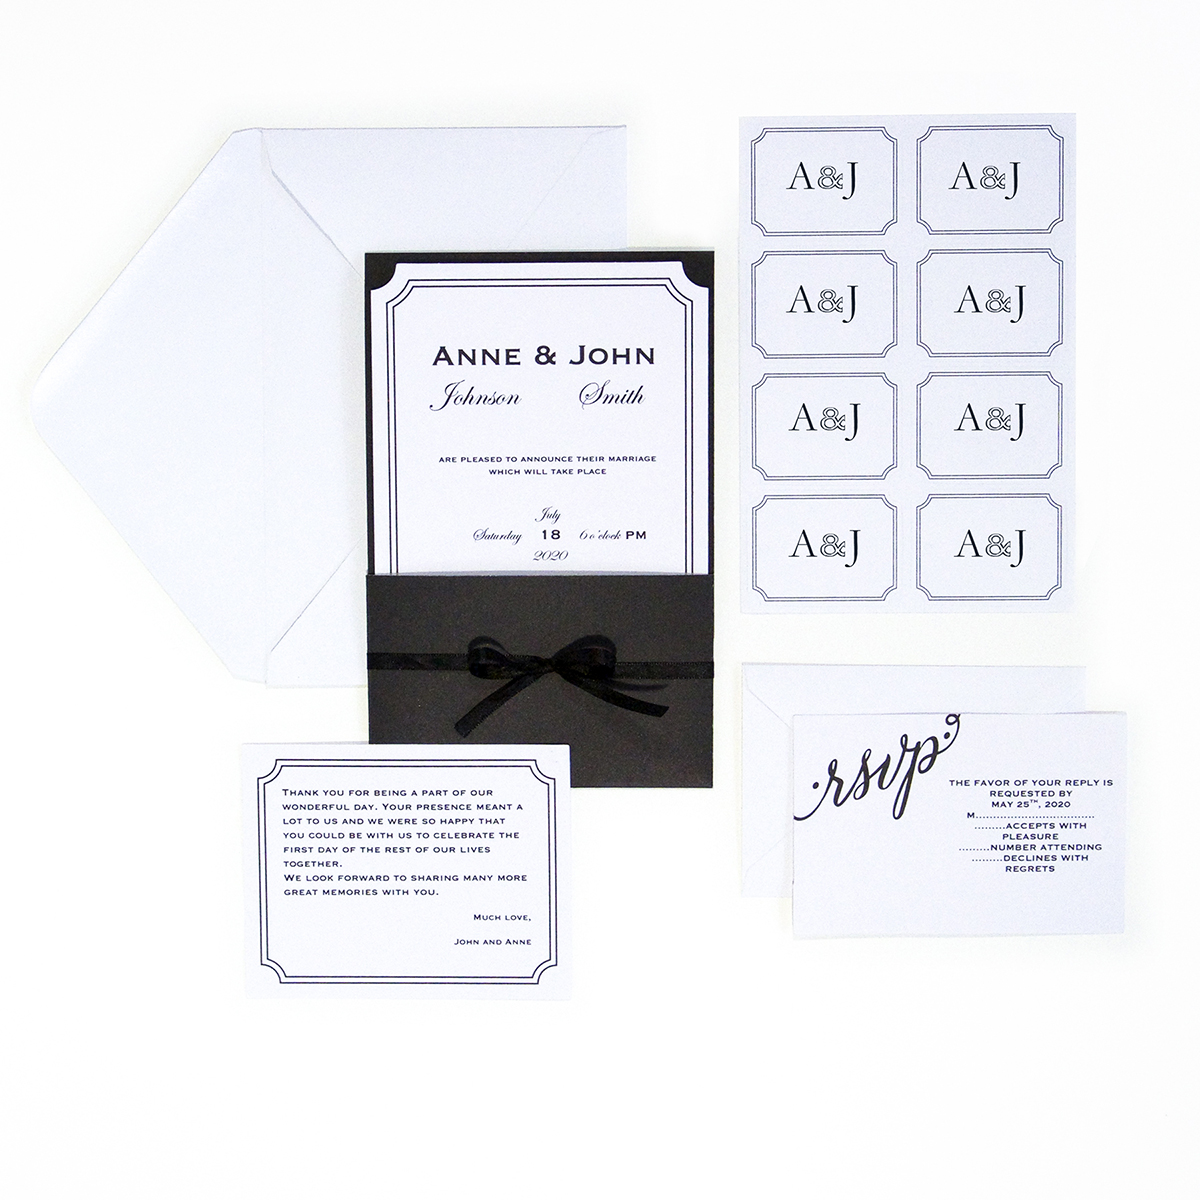 michael s wedding invitations reviews michaels wedding invitations Michael S Wedding Invitations Reviews